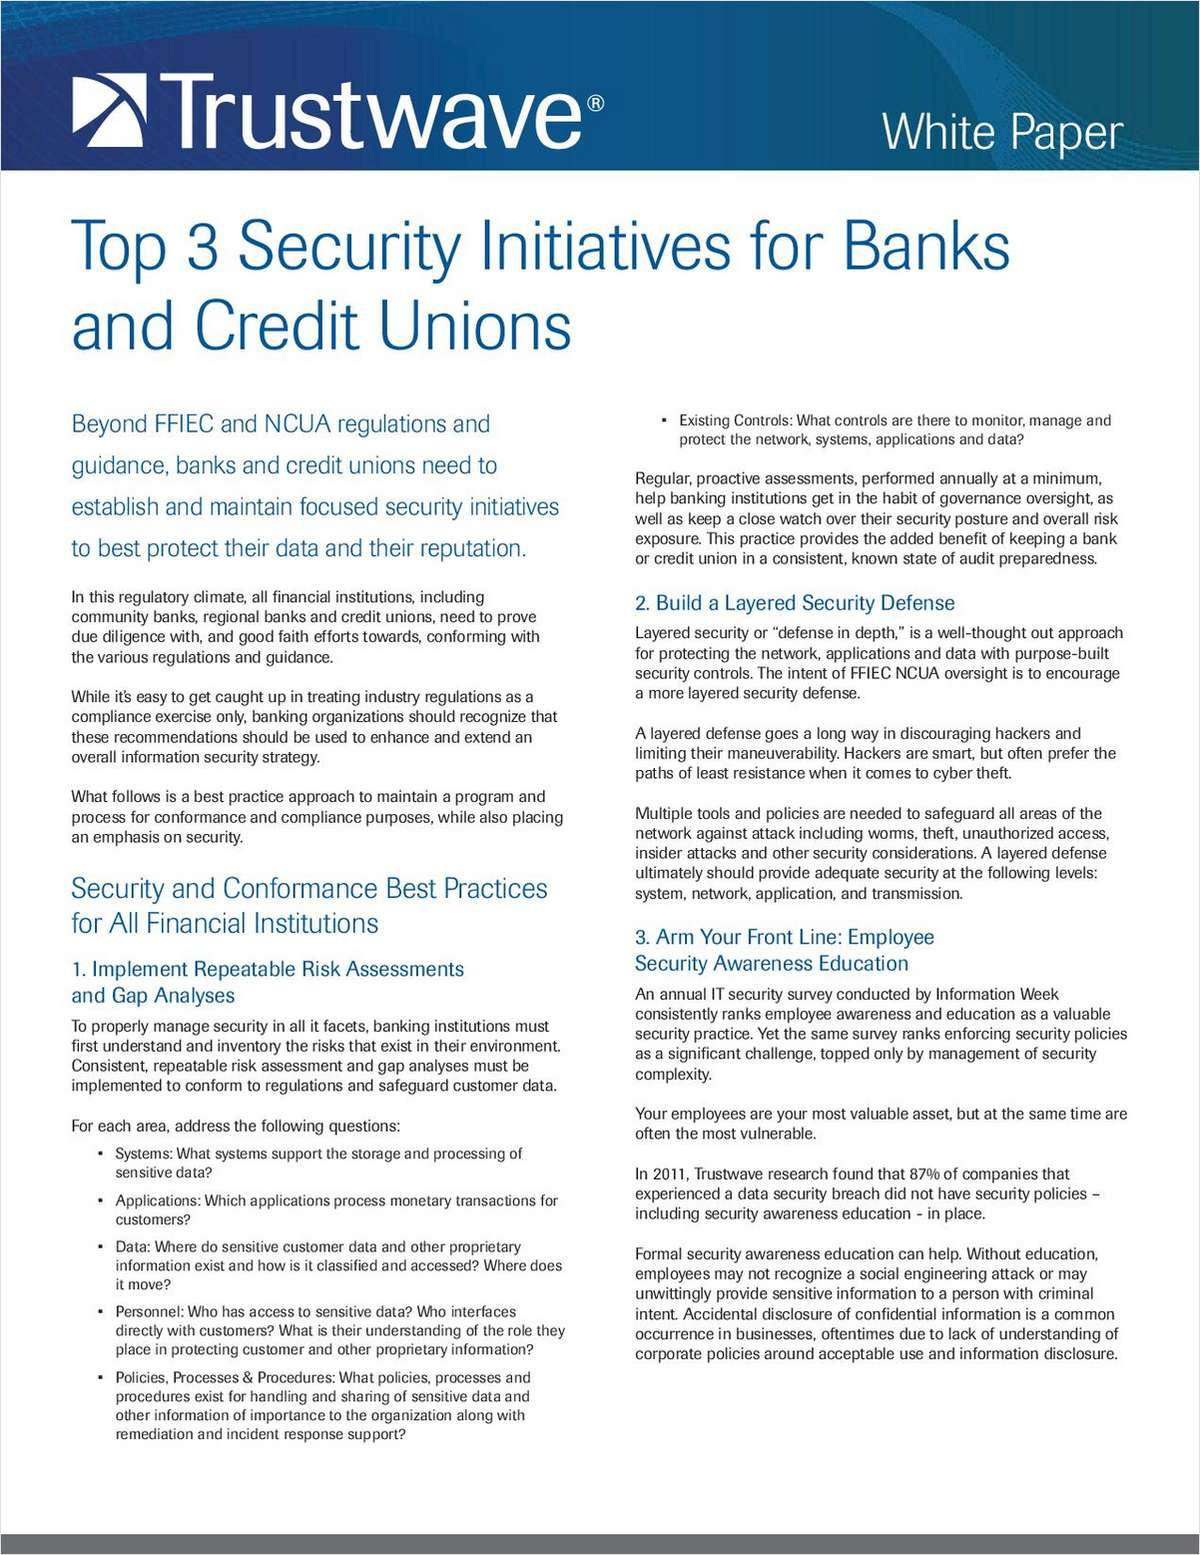 Top 3 Security Initiatives for Banks and Credit Unions